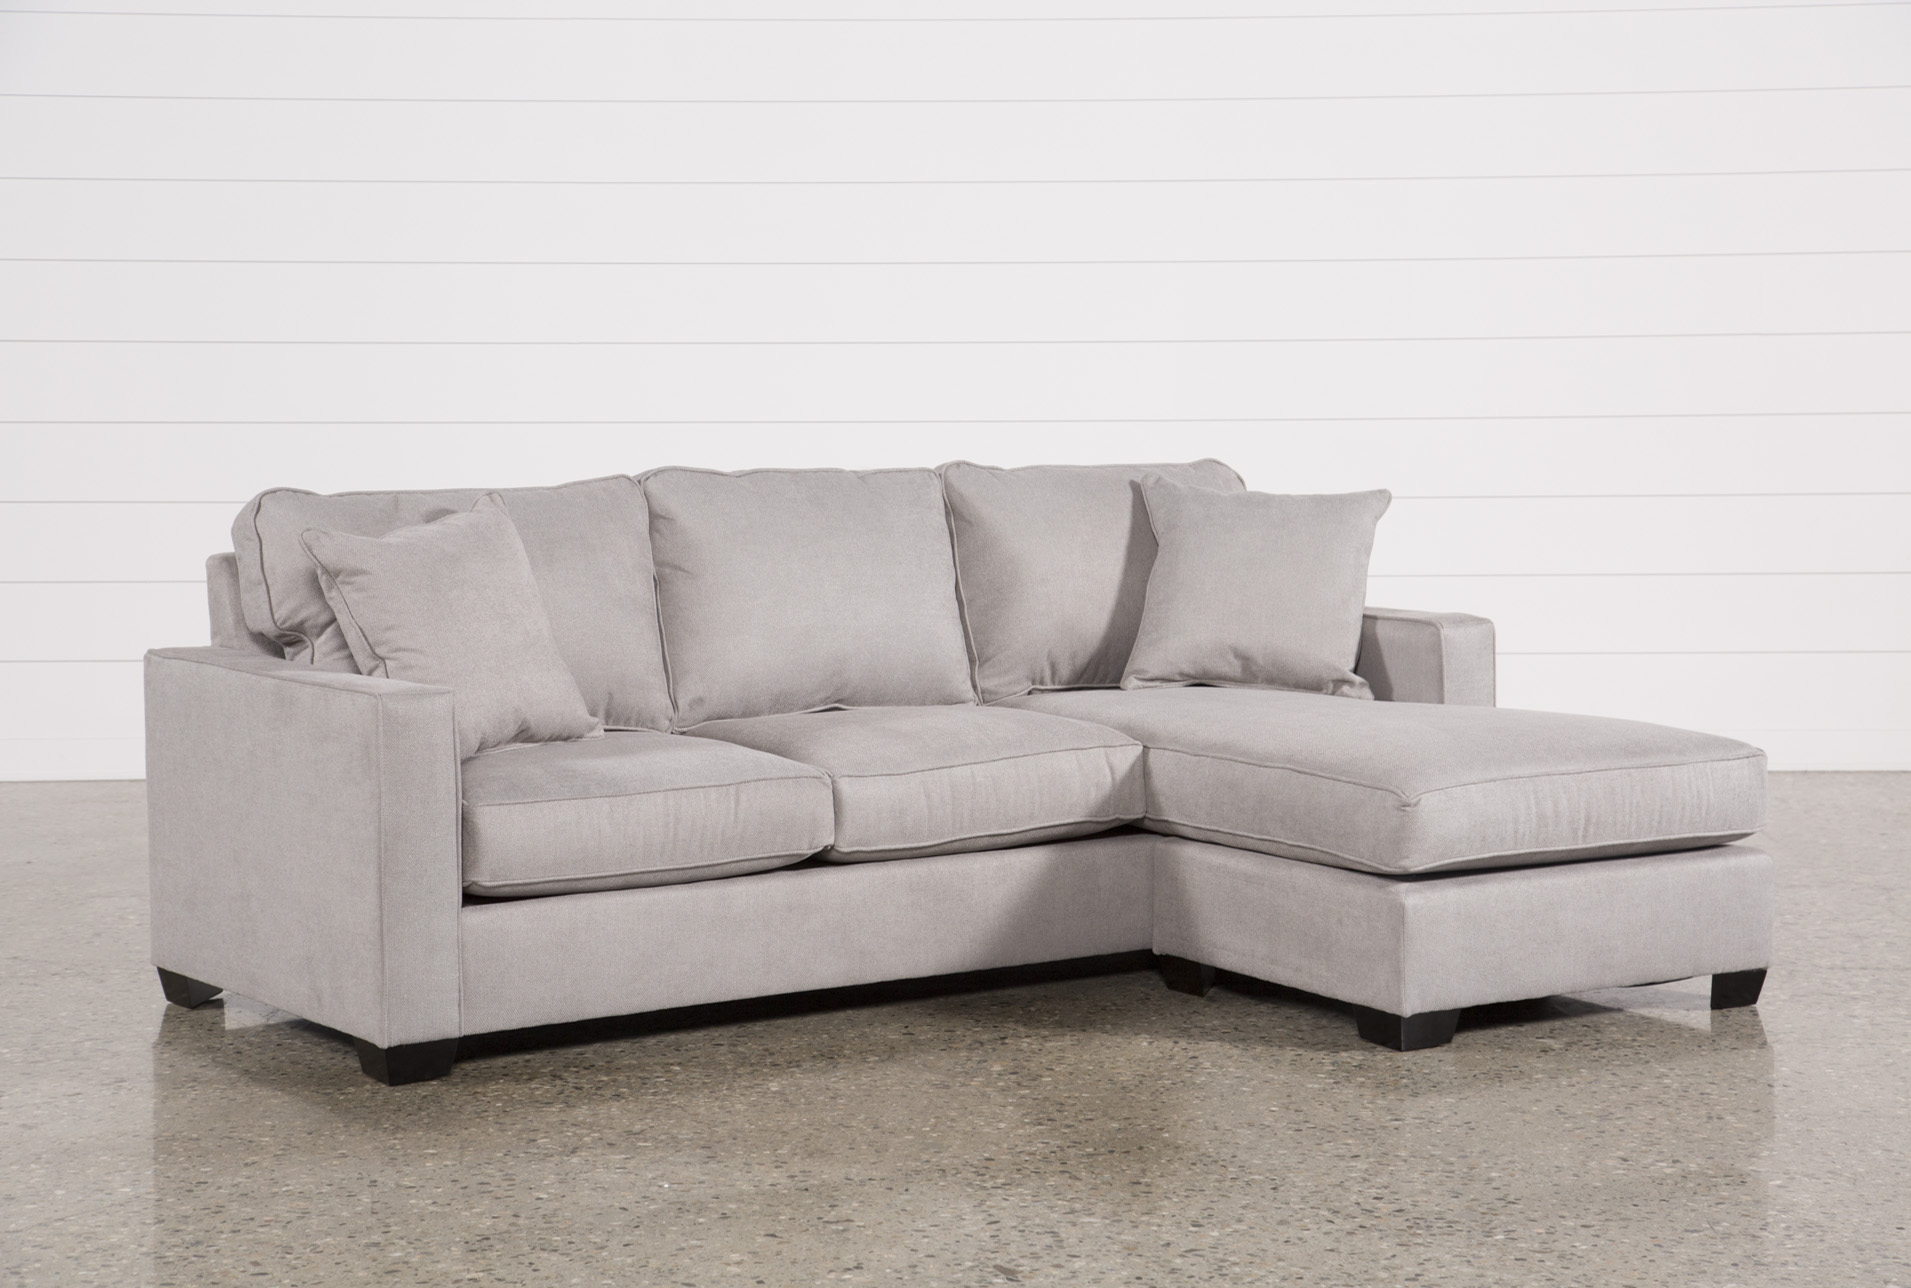 Egan Ii Cement Sofa Sectionals mit Wende-Chaiselongue